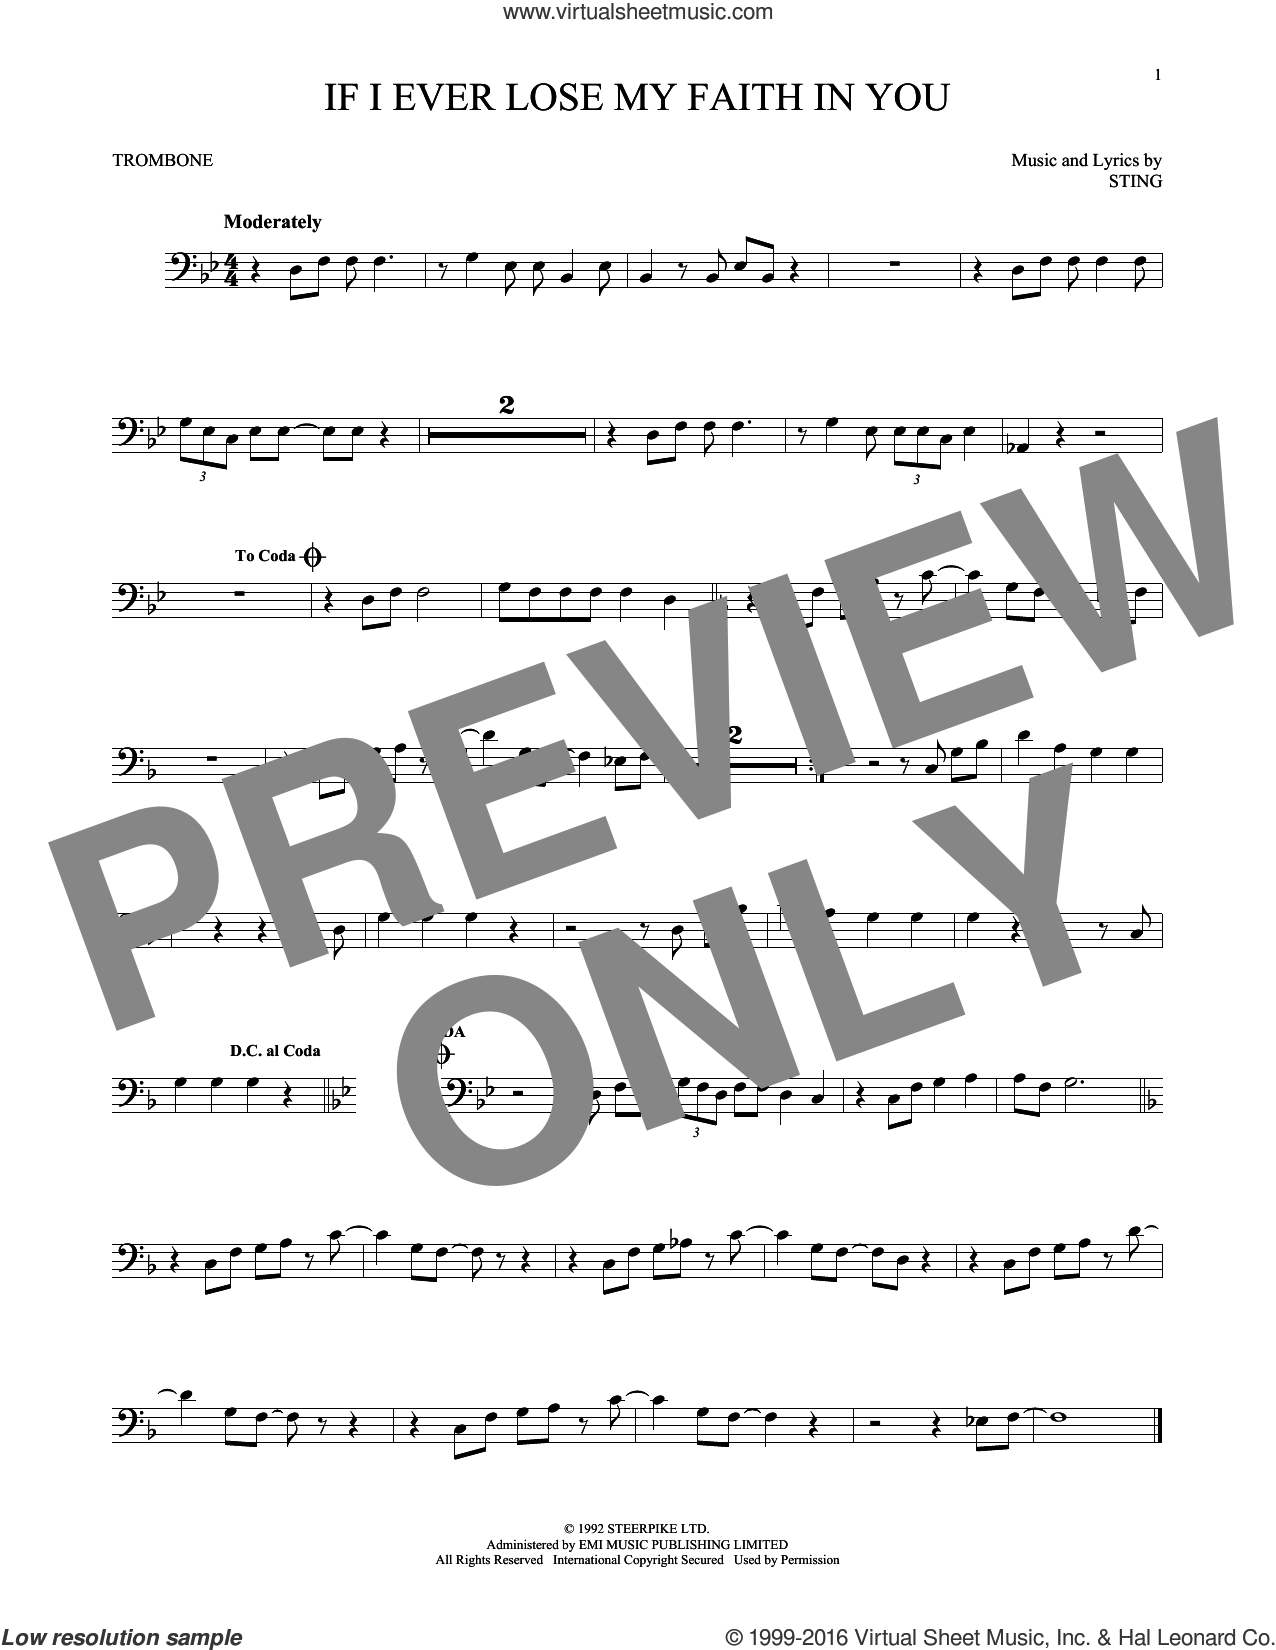 If I Ever Lose My Faith In You sheet music for trombone solo by Sting. Score Image Preview.